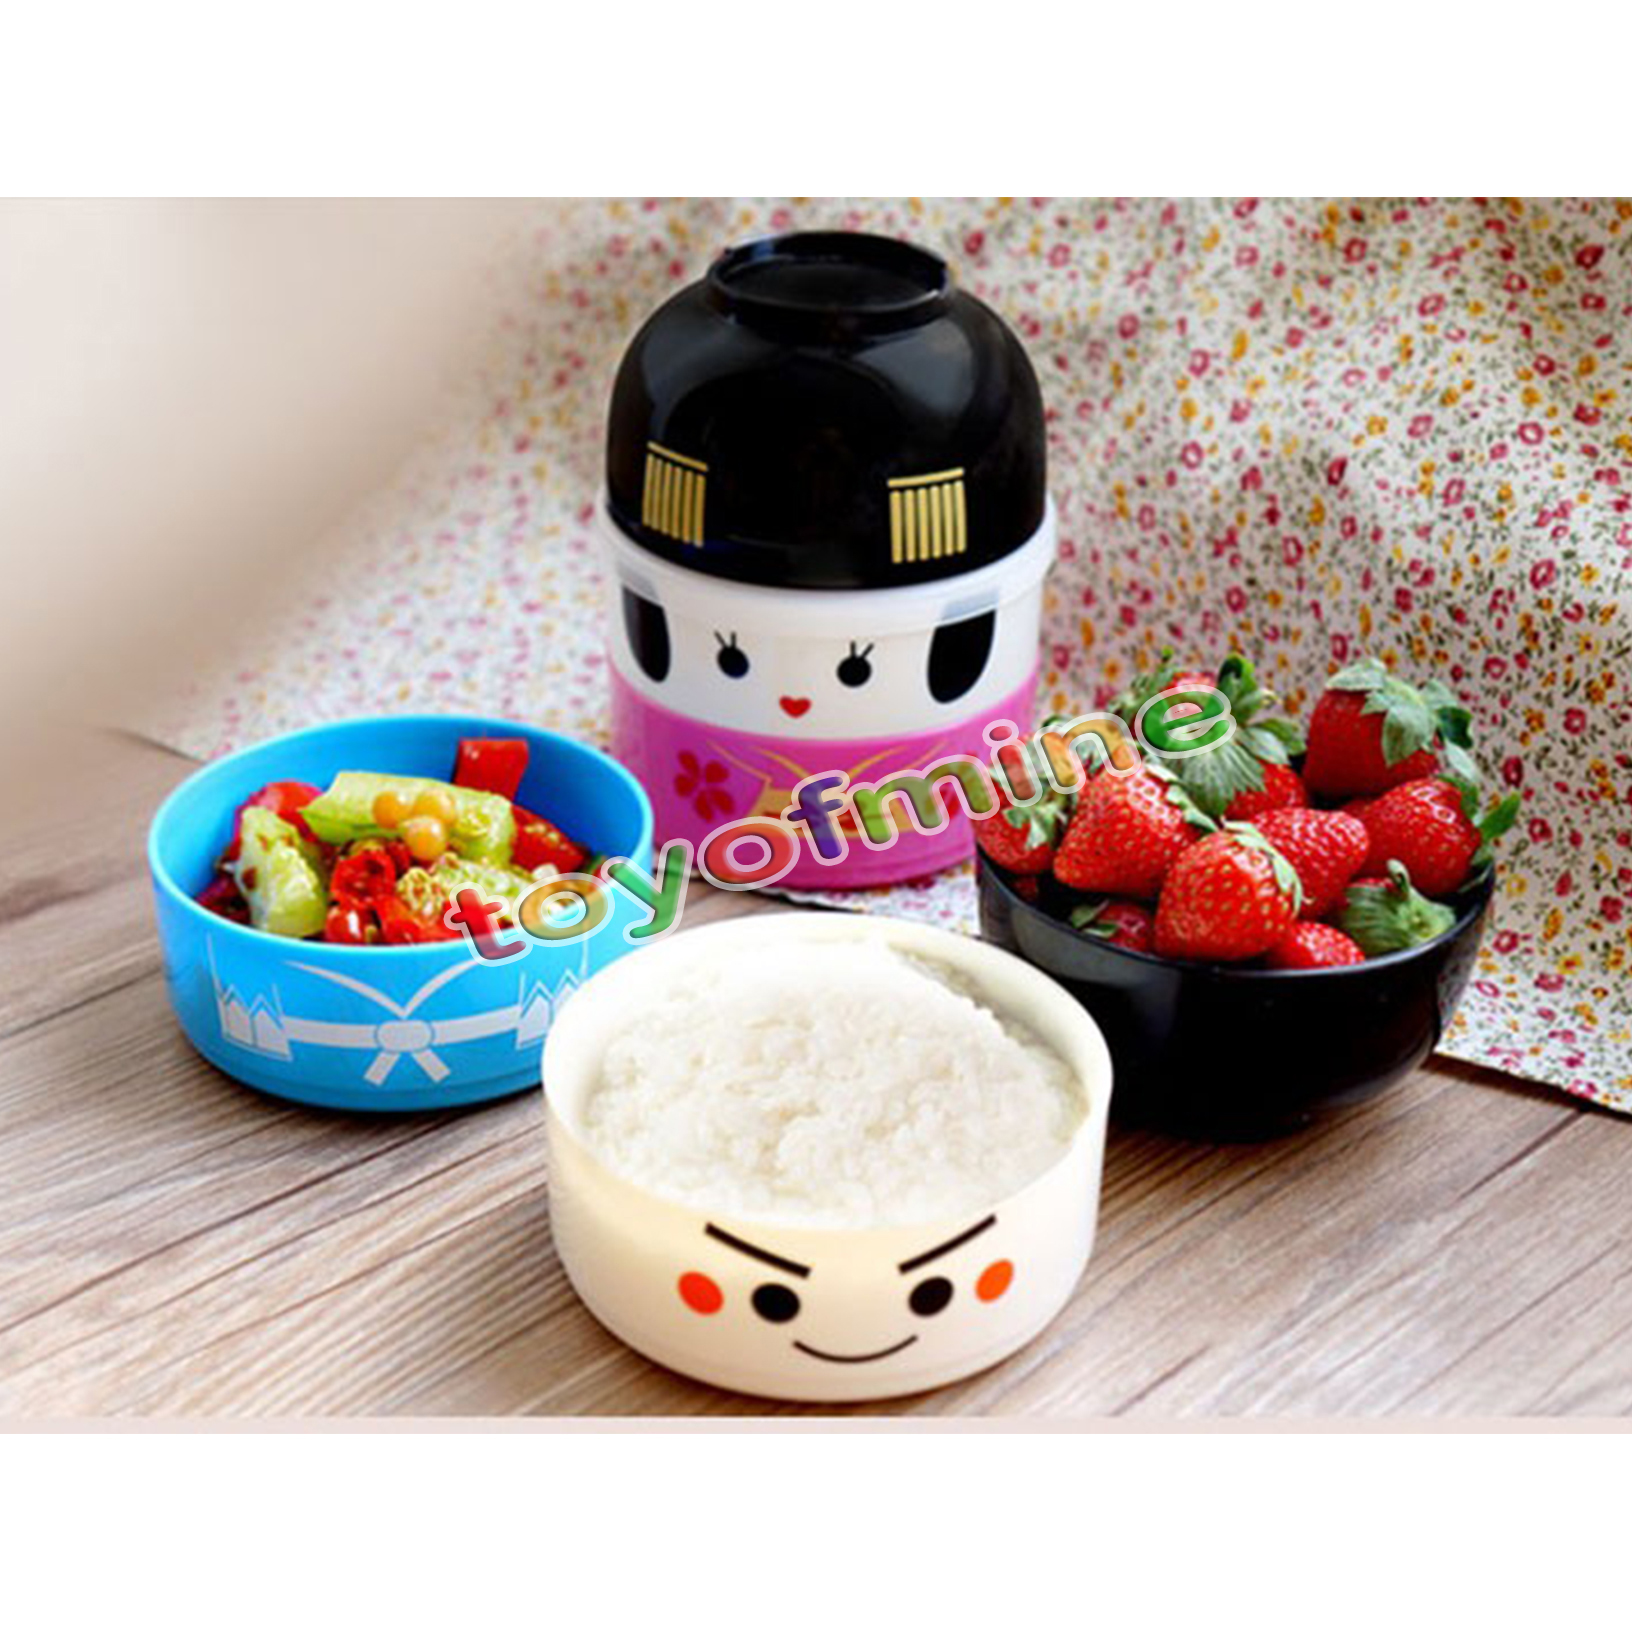 japanese hakoya geisha doll bento lunch box plastic food container bowl boy girl ebay. Black Bedroom Furniture Sets. Home Design Ideas